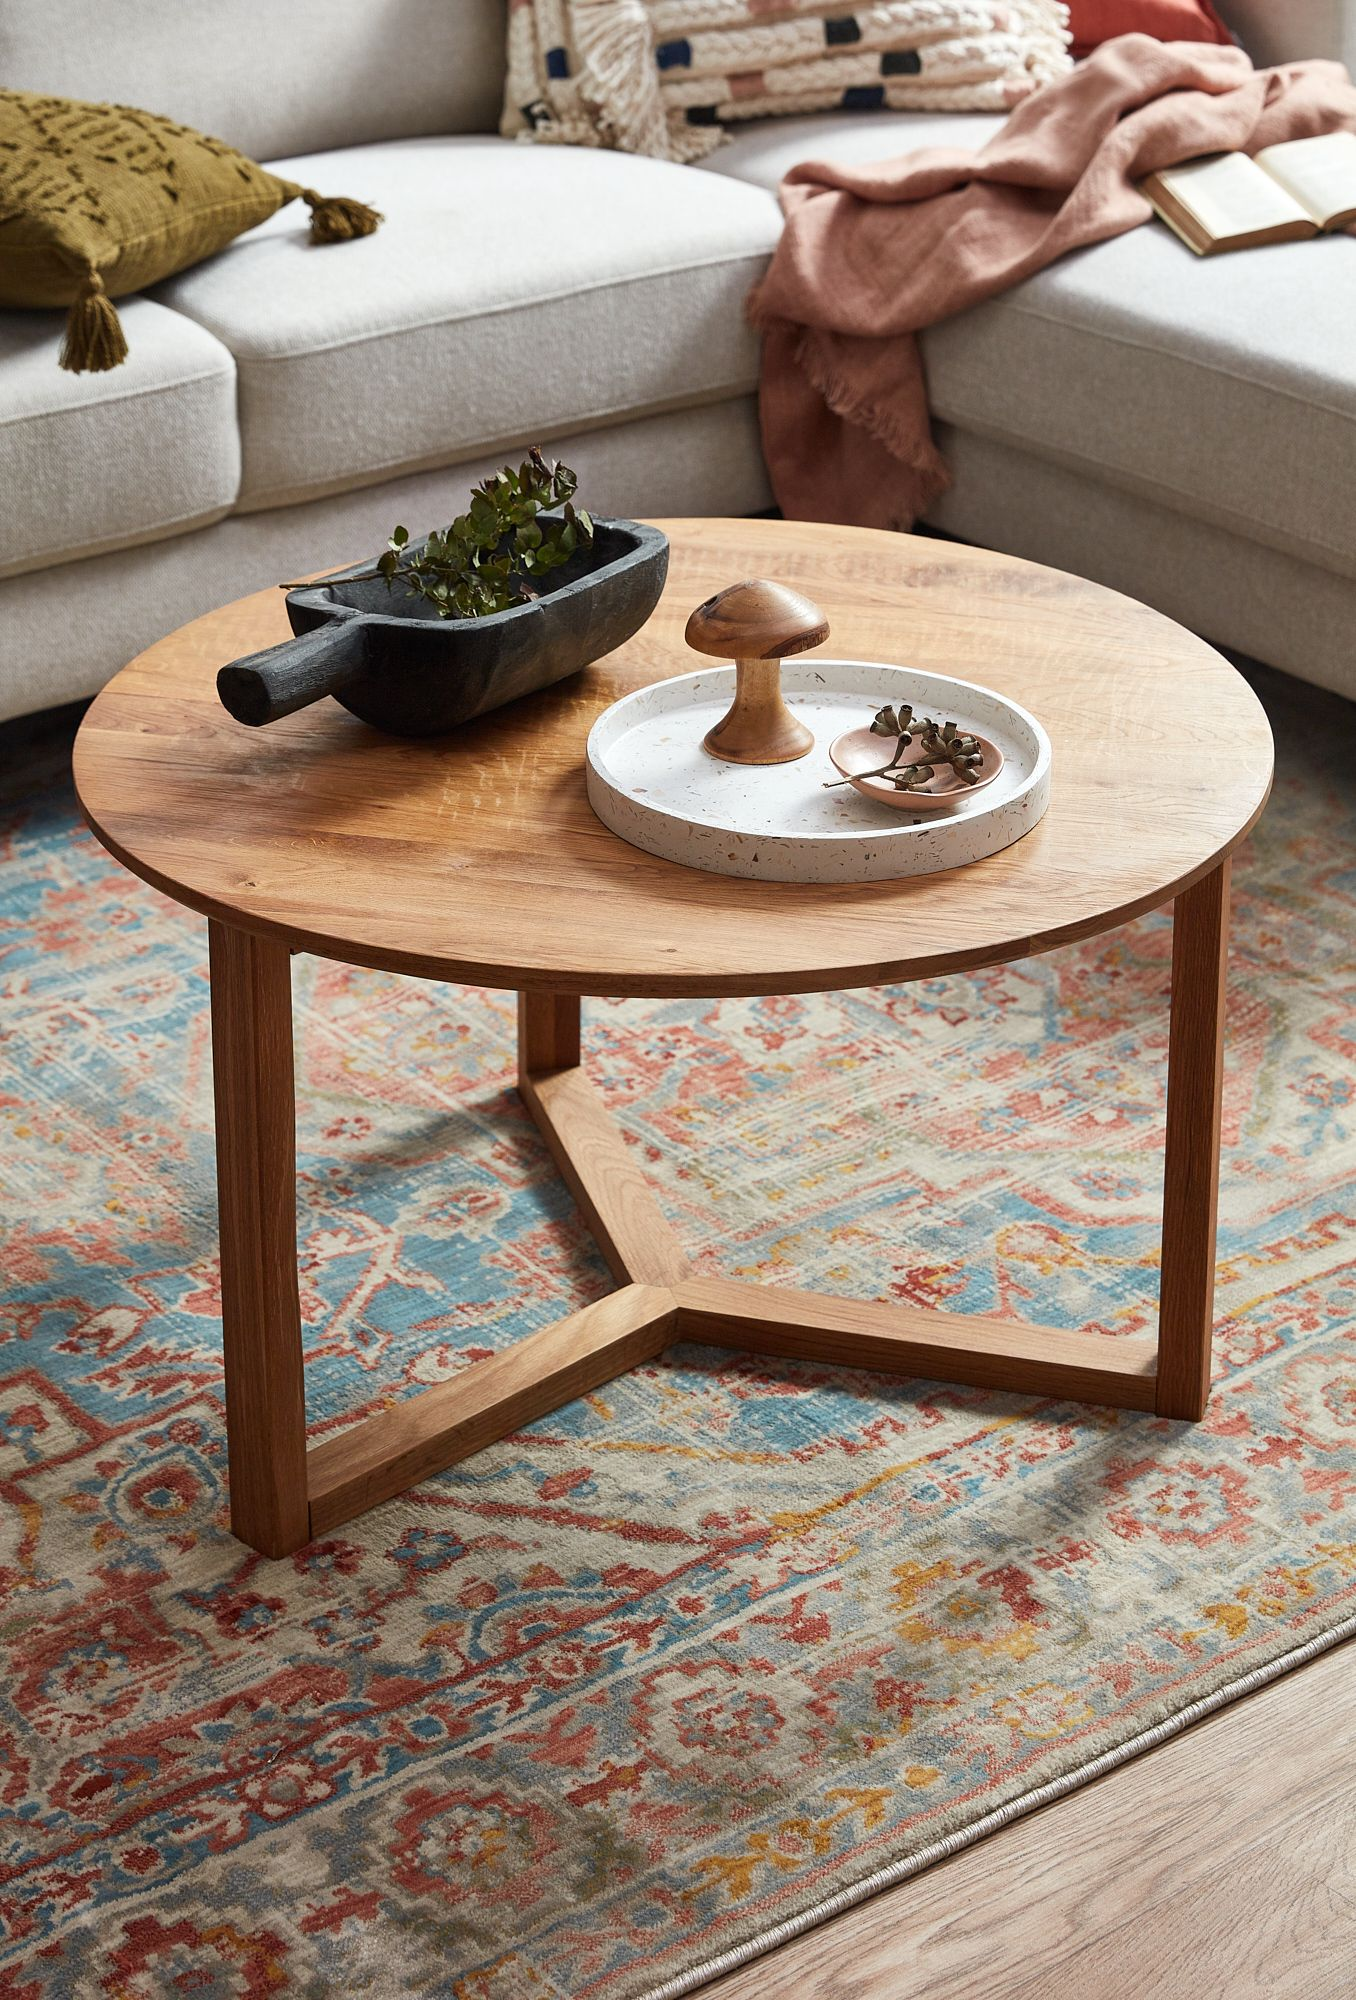 Pin By Mario Alvarado On Assets For Mailer Wooden Coffee Table Designs Coffee Table Furniture Sofa Table Design [ 1196 x 1792 Pixel ]